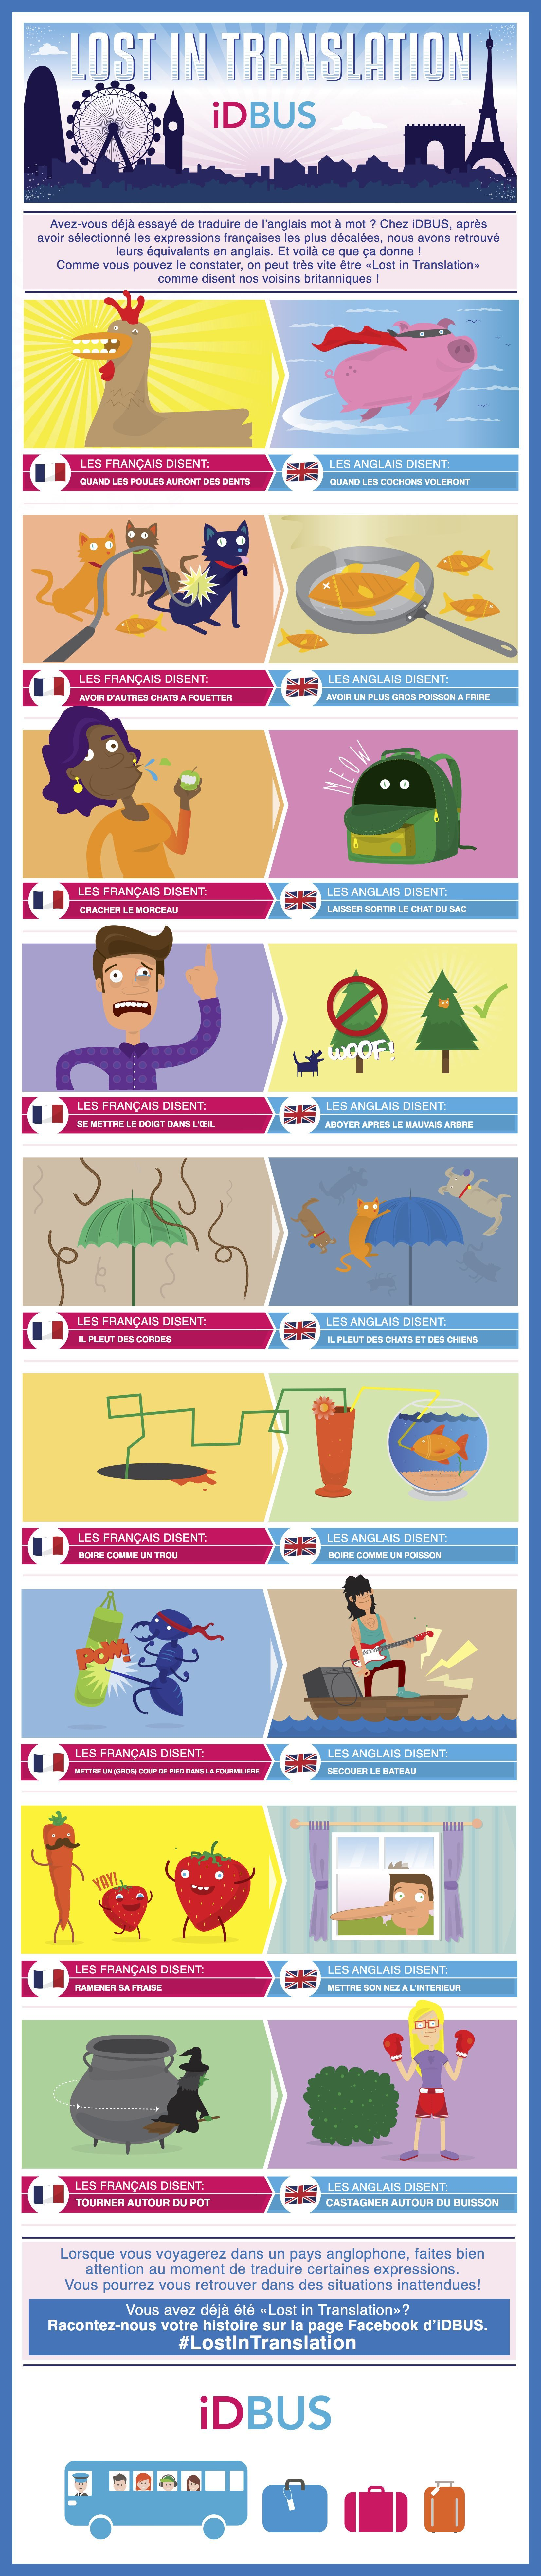 Lost In Translation ) Des expressions idiomatiques et